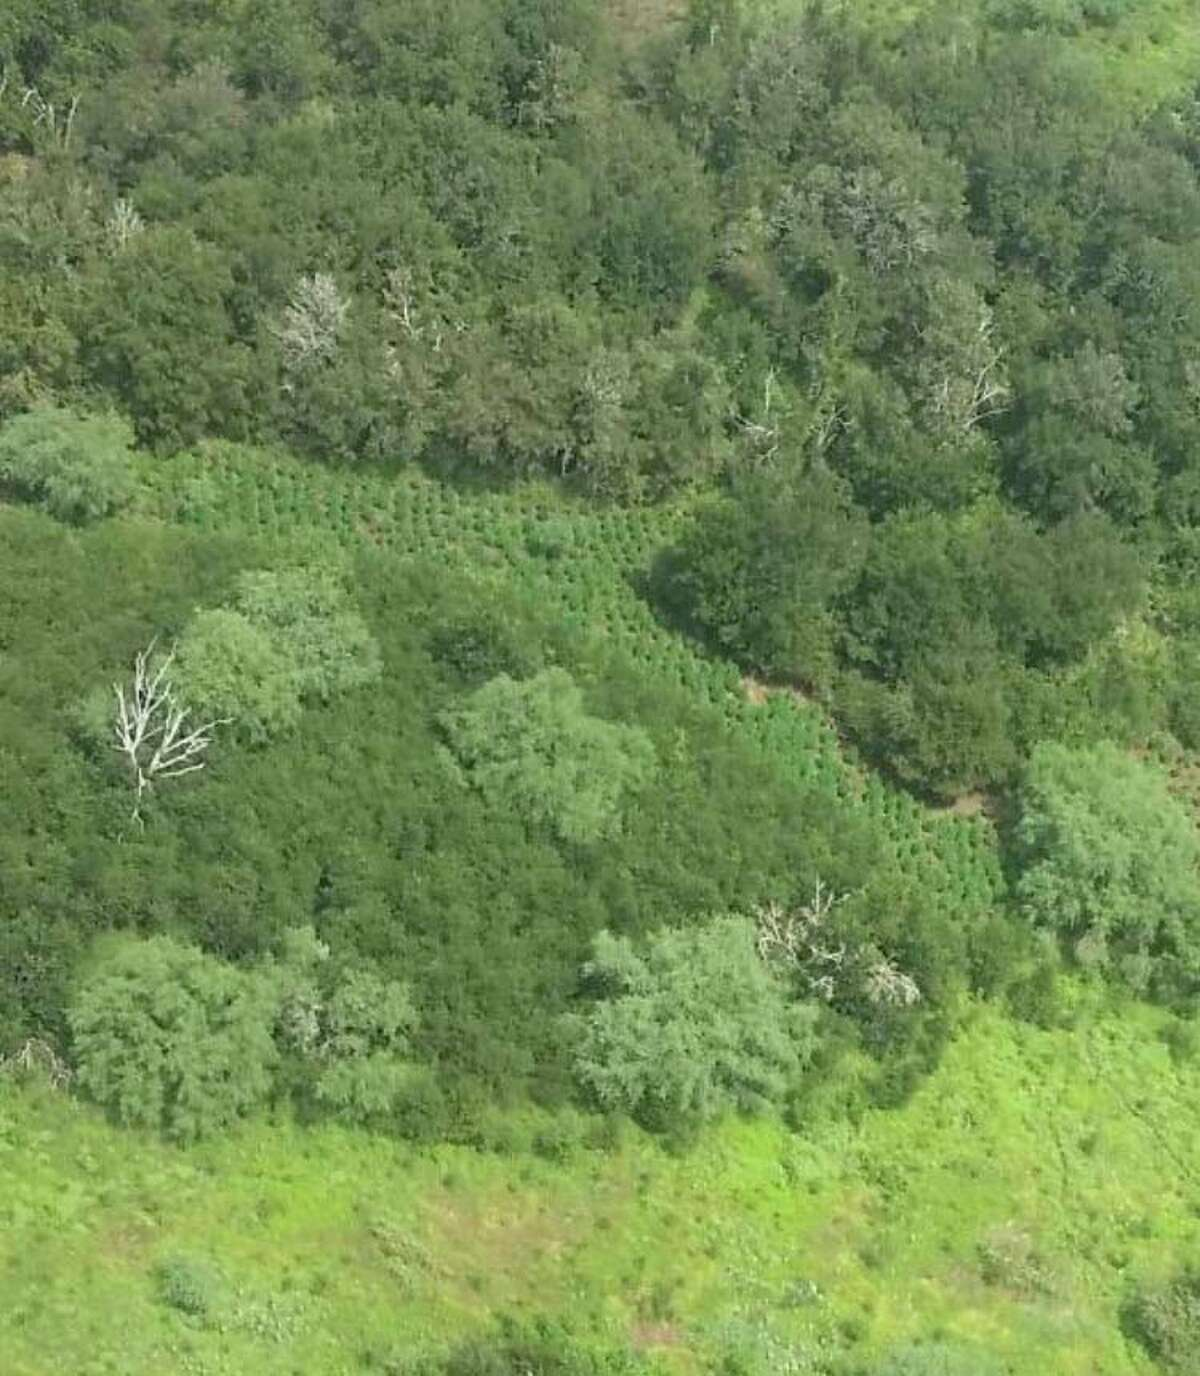 DEA and Austin County officials found and destroyed 8,653 marijuana plants and other items after a DEA helicopter discovered a pot farm Aug. 26 in Austin County.